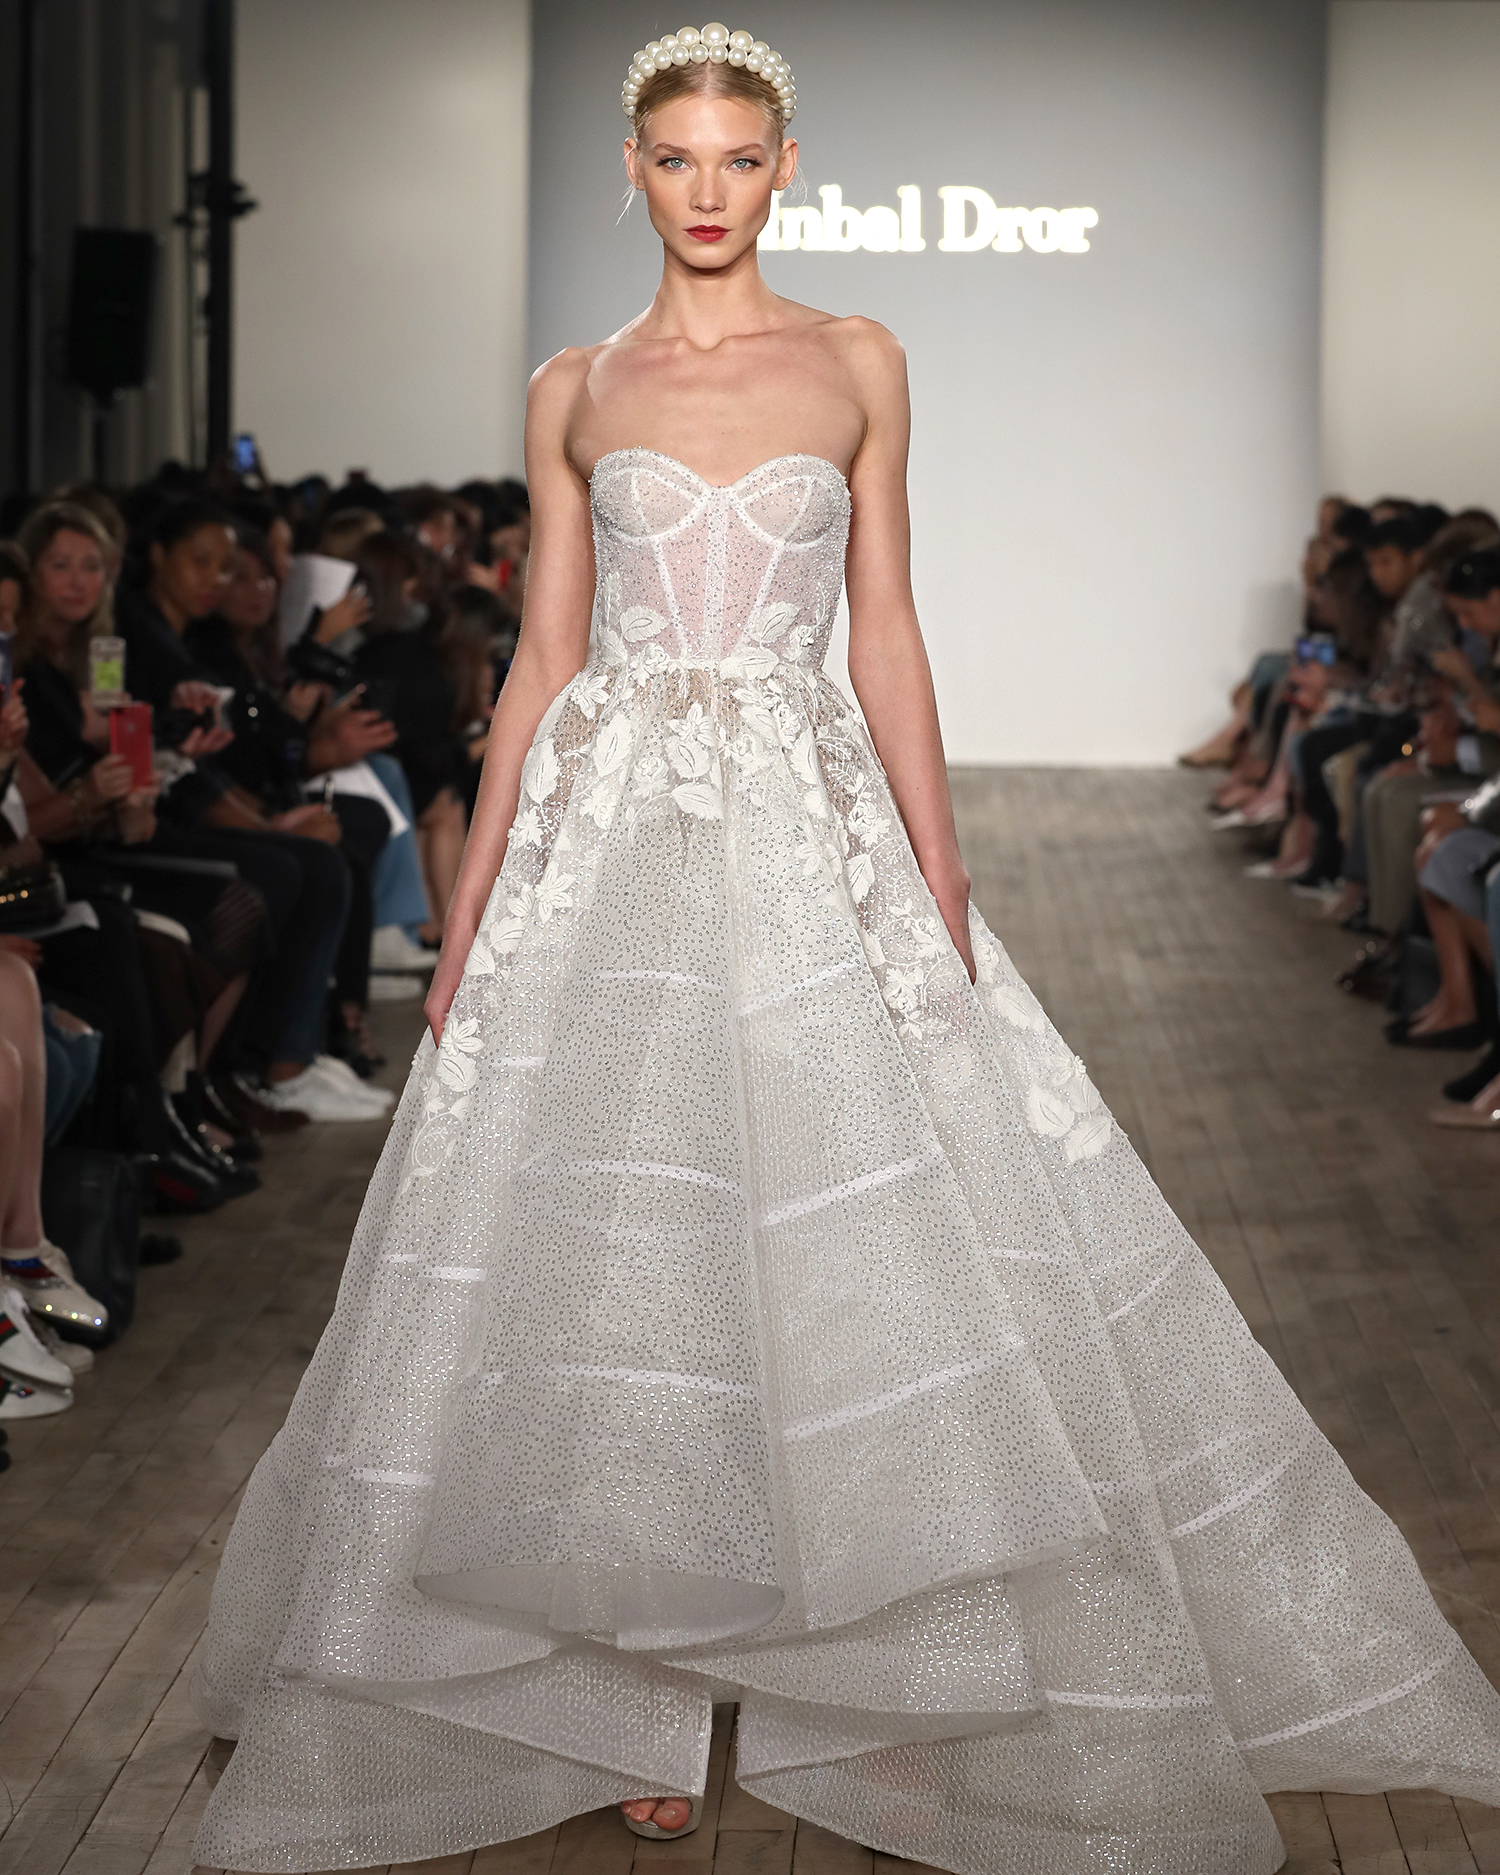 Inbal Dror Fall 2019 Wedding Dress Collection